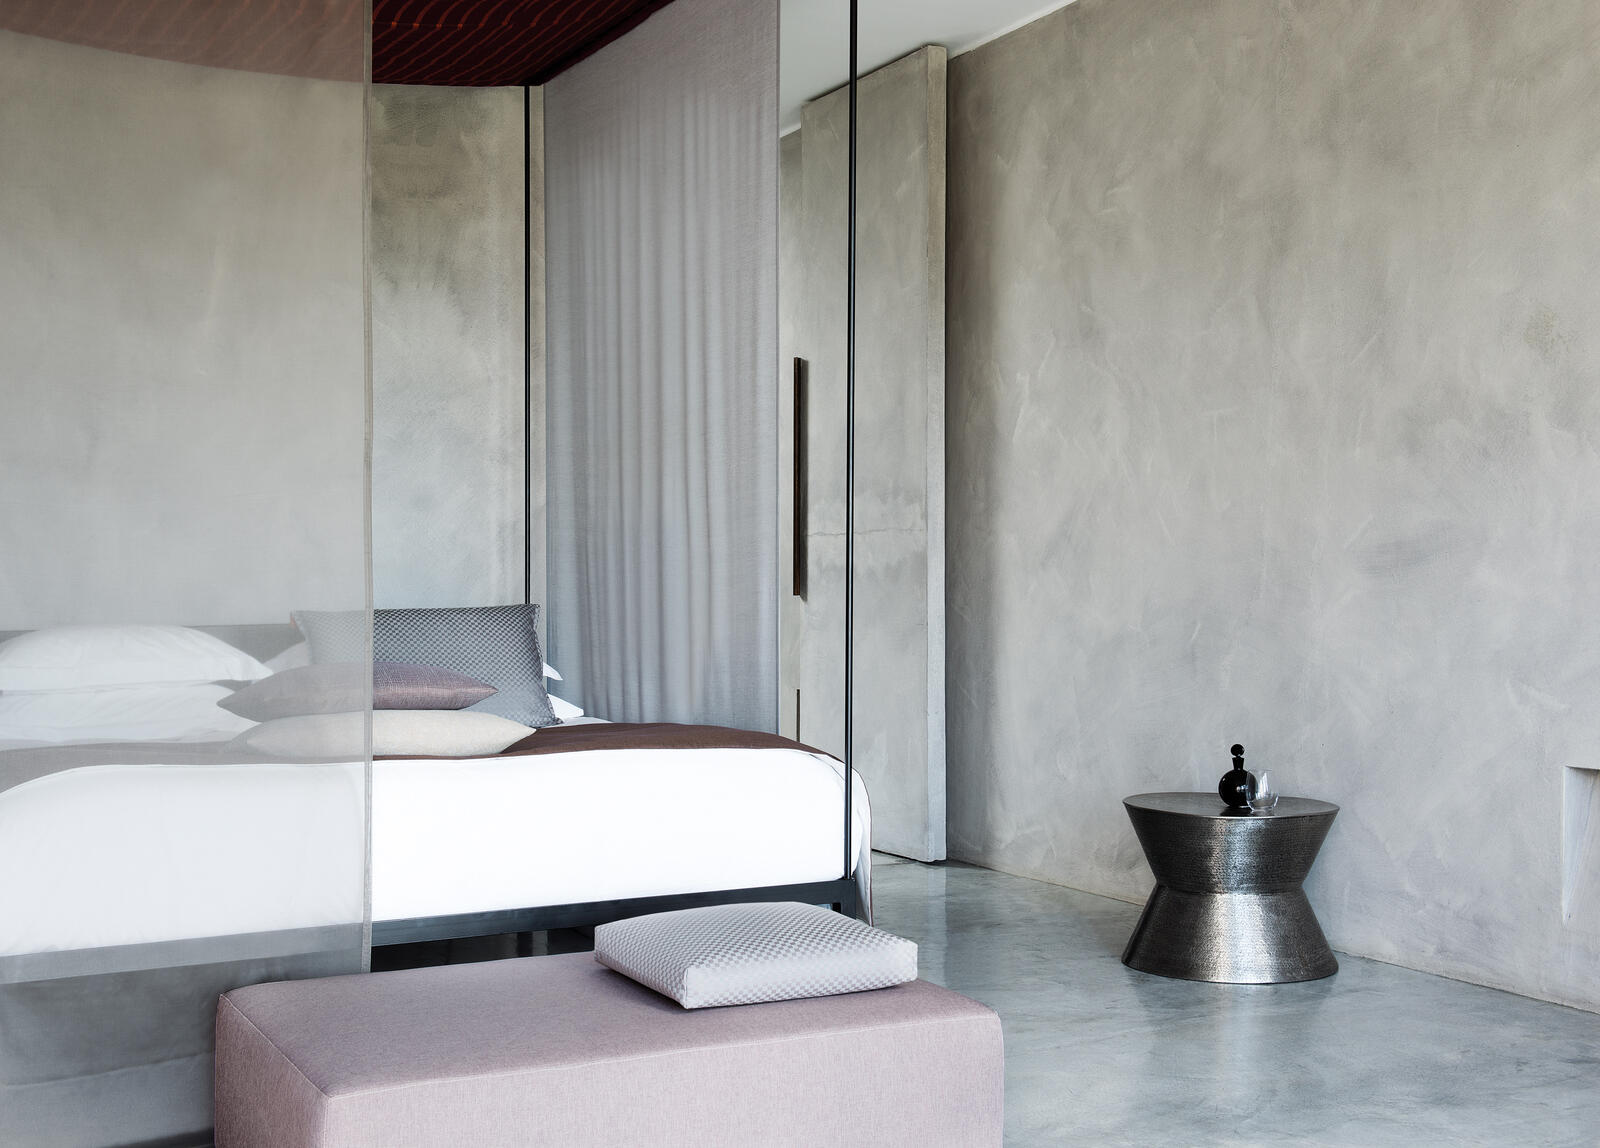 fr sheer curtain fabric in a minimalist bedroom_offa and gossy collection